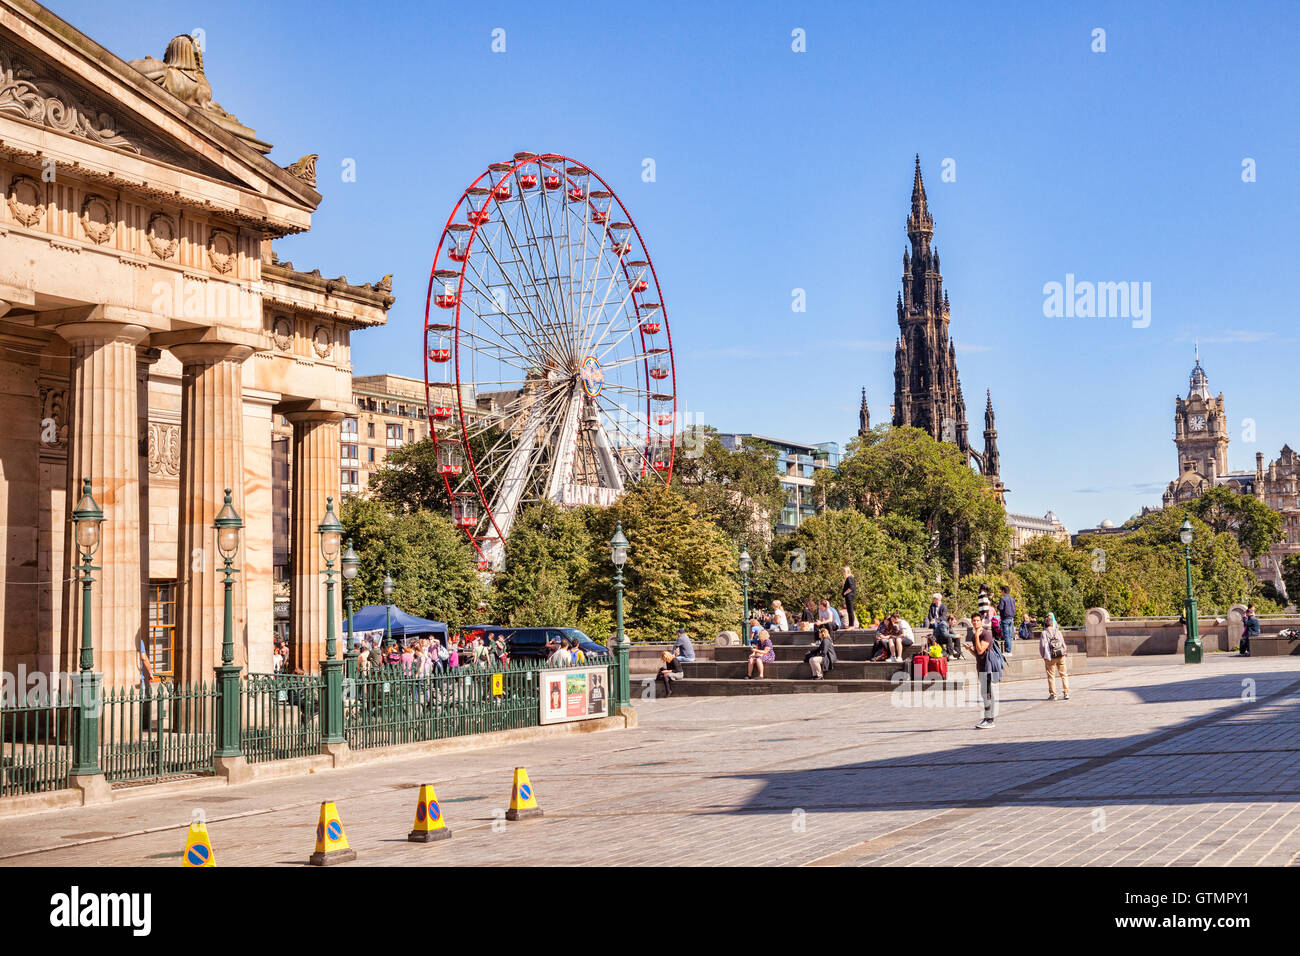 Edinburgh skyline, with the Scottish National Gallery, the Festival Wheel, the Scott Monument, and the clock tower - Stock Image